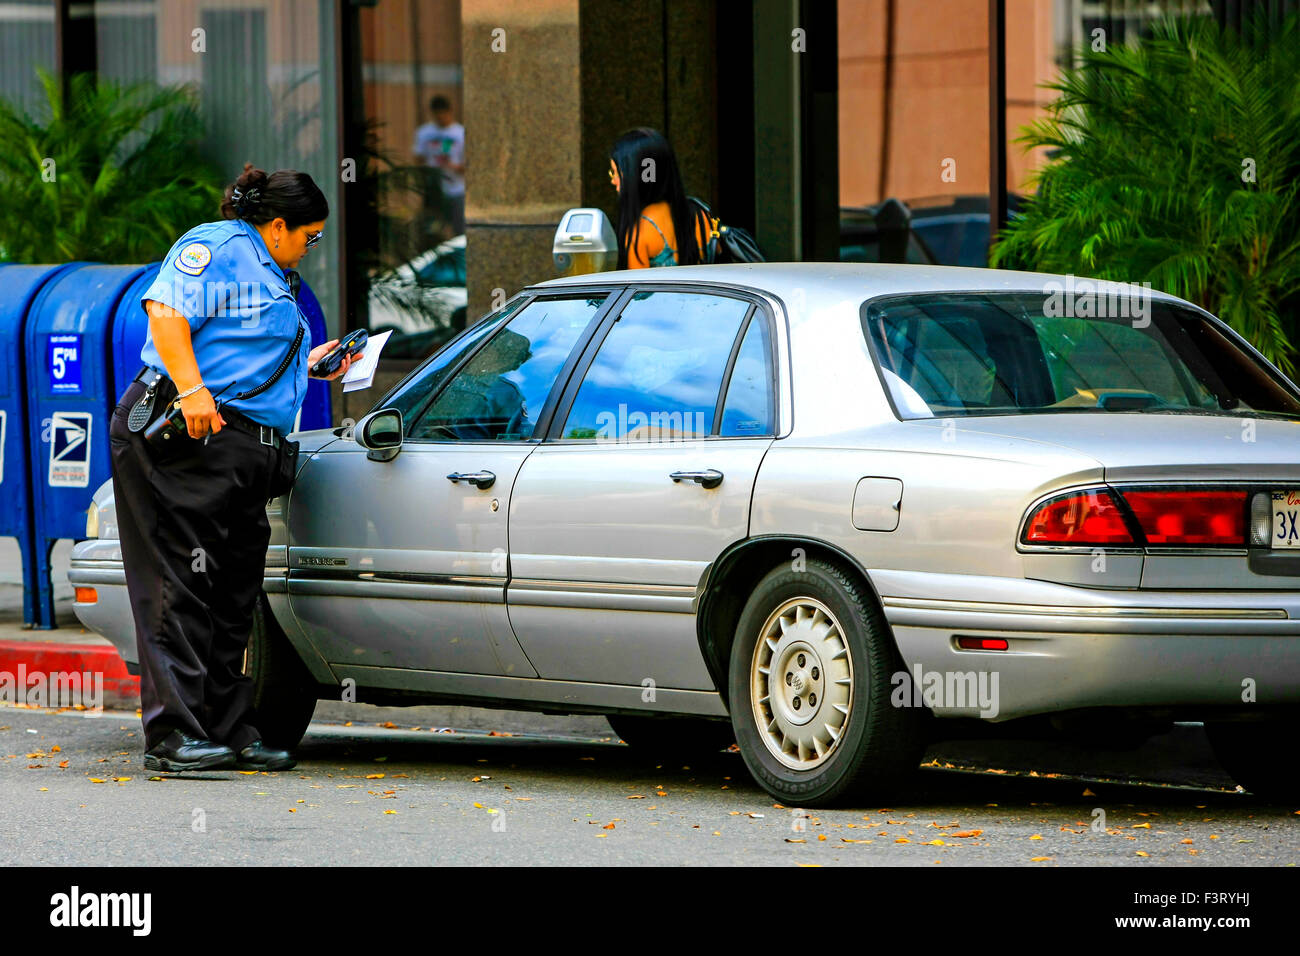 how to become a parking enforcement officer